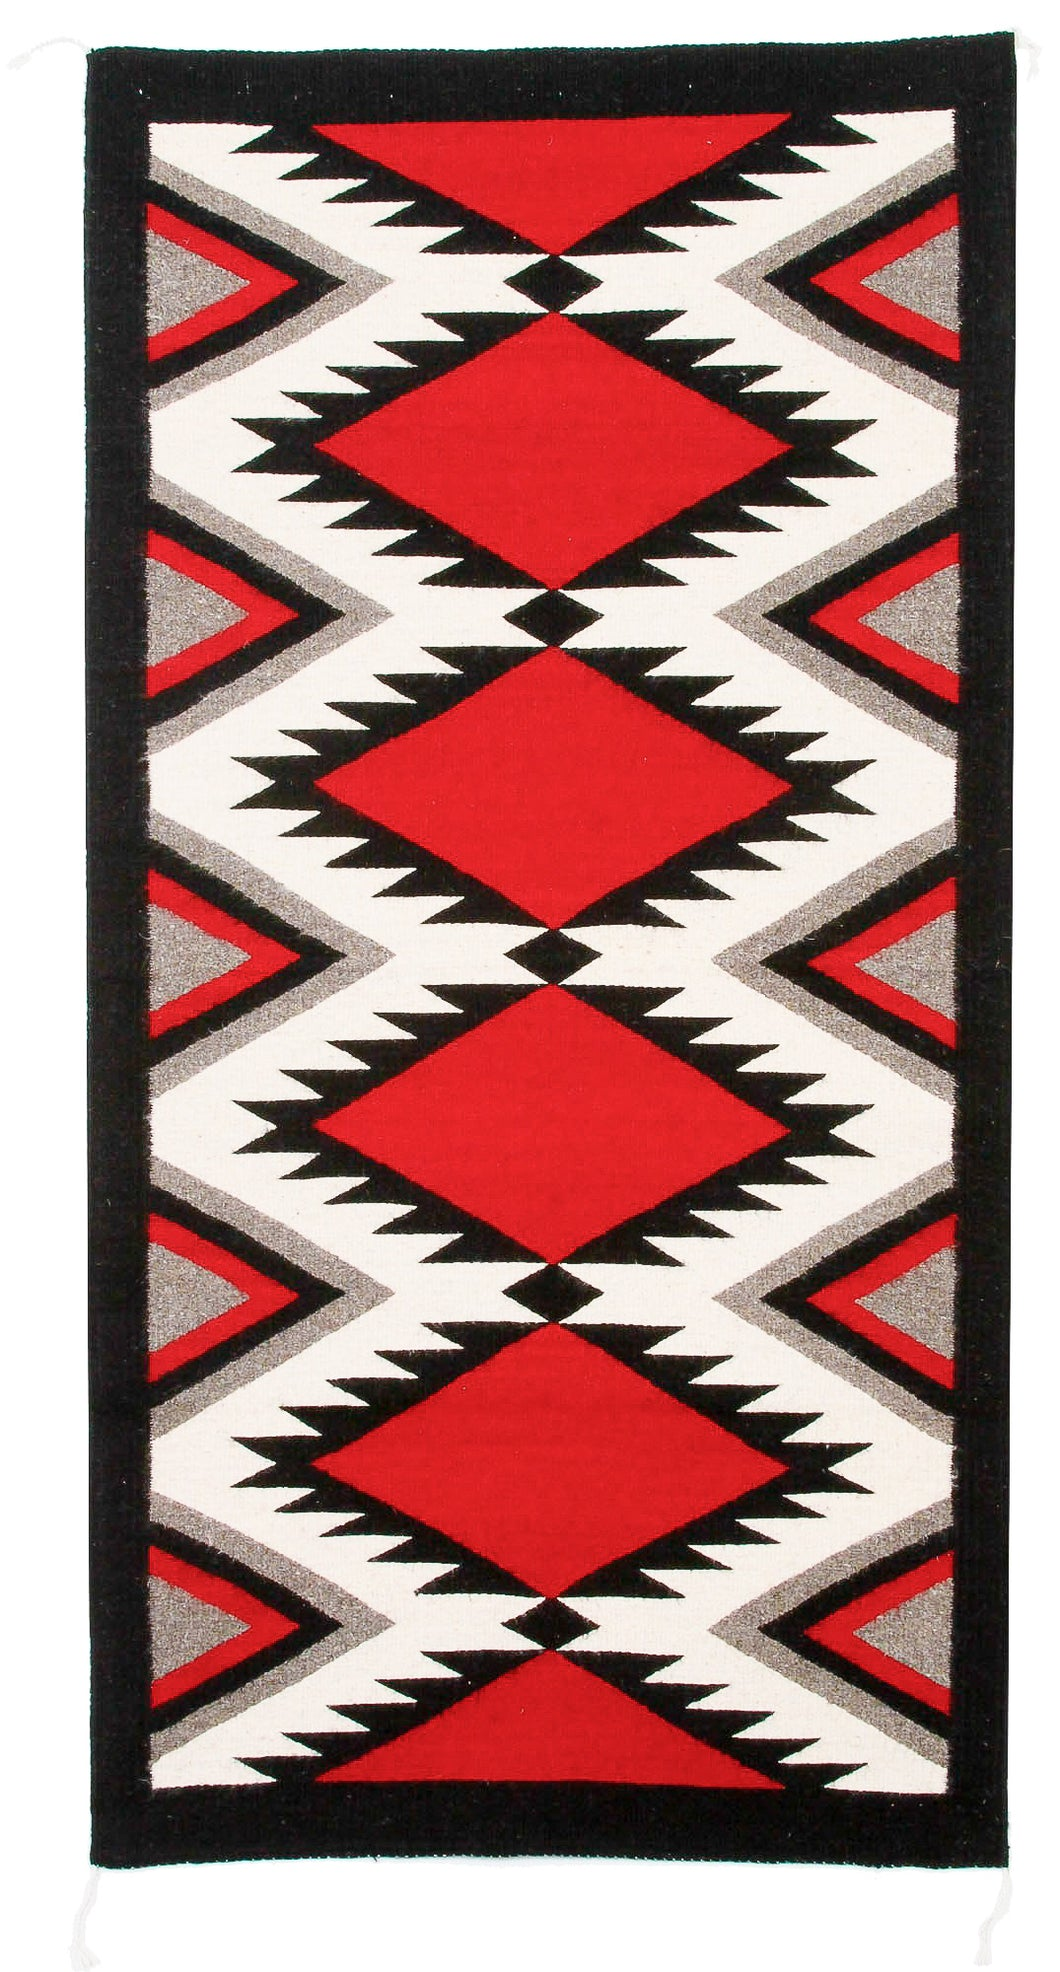 Handwoven Zapotec Indian Rug - Zapotec Diamond Wool Oaxacan Textile